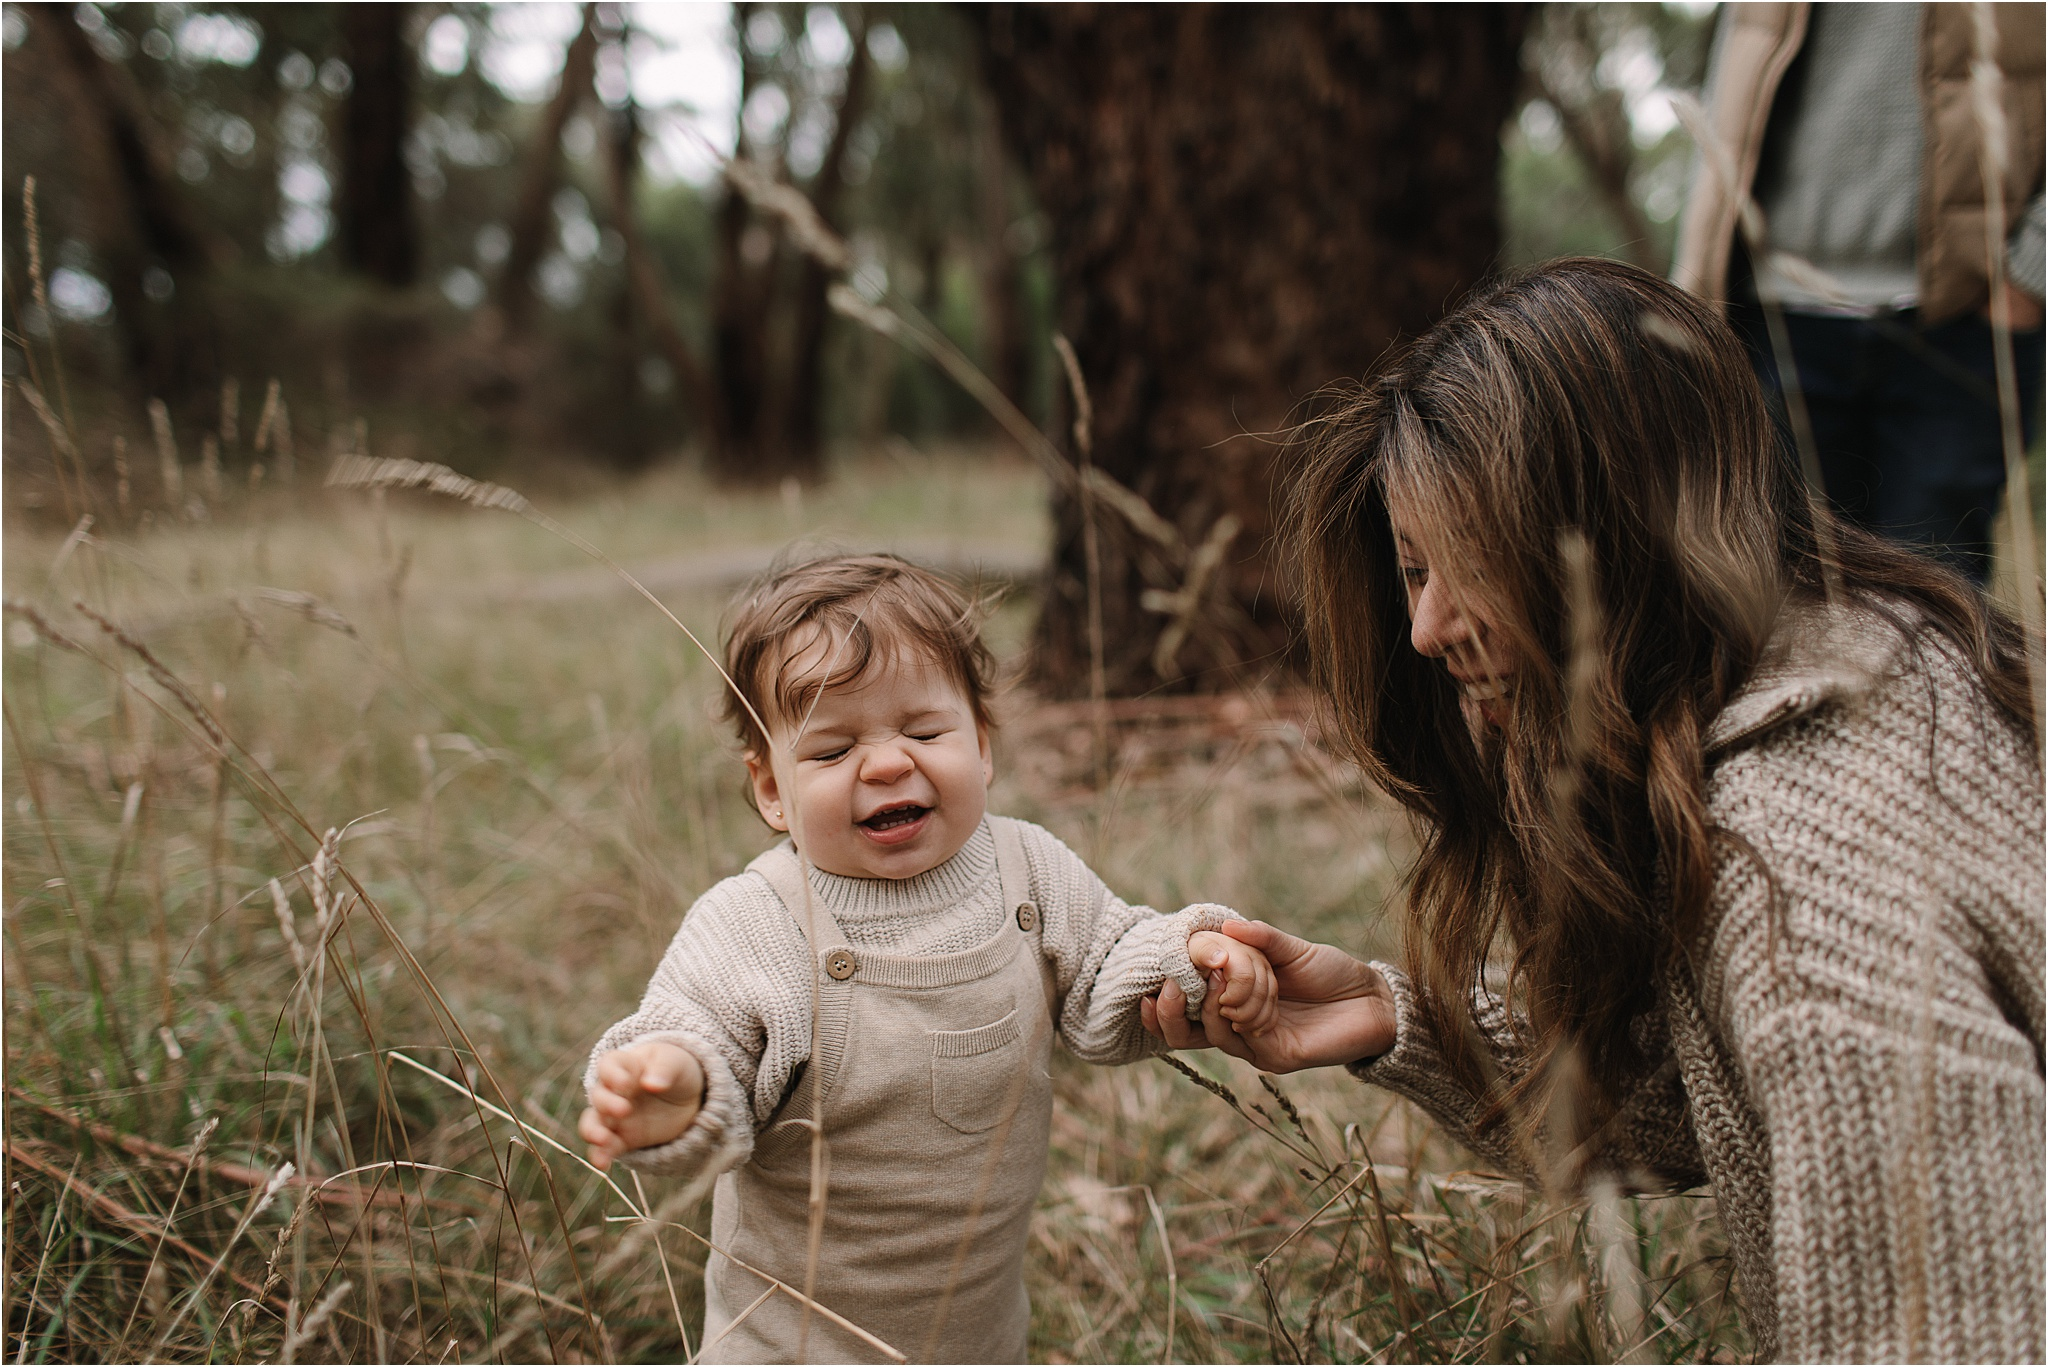 A funny expression on a toddlers face as the long grass tickles her